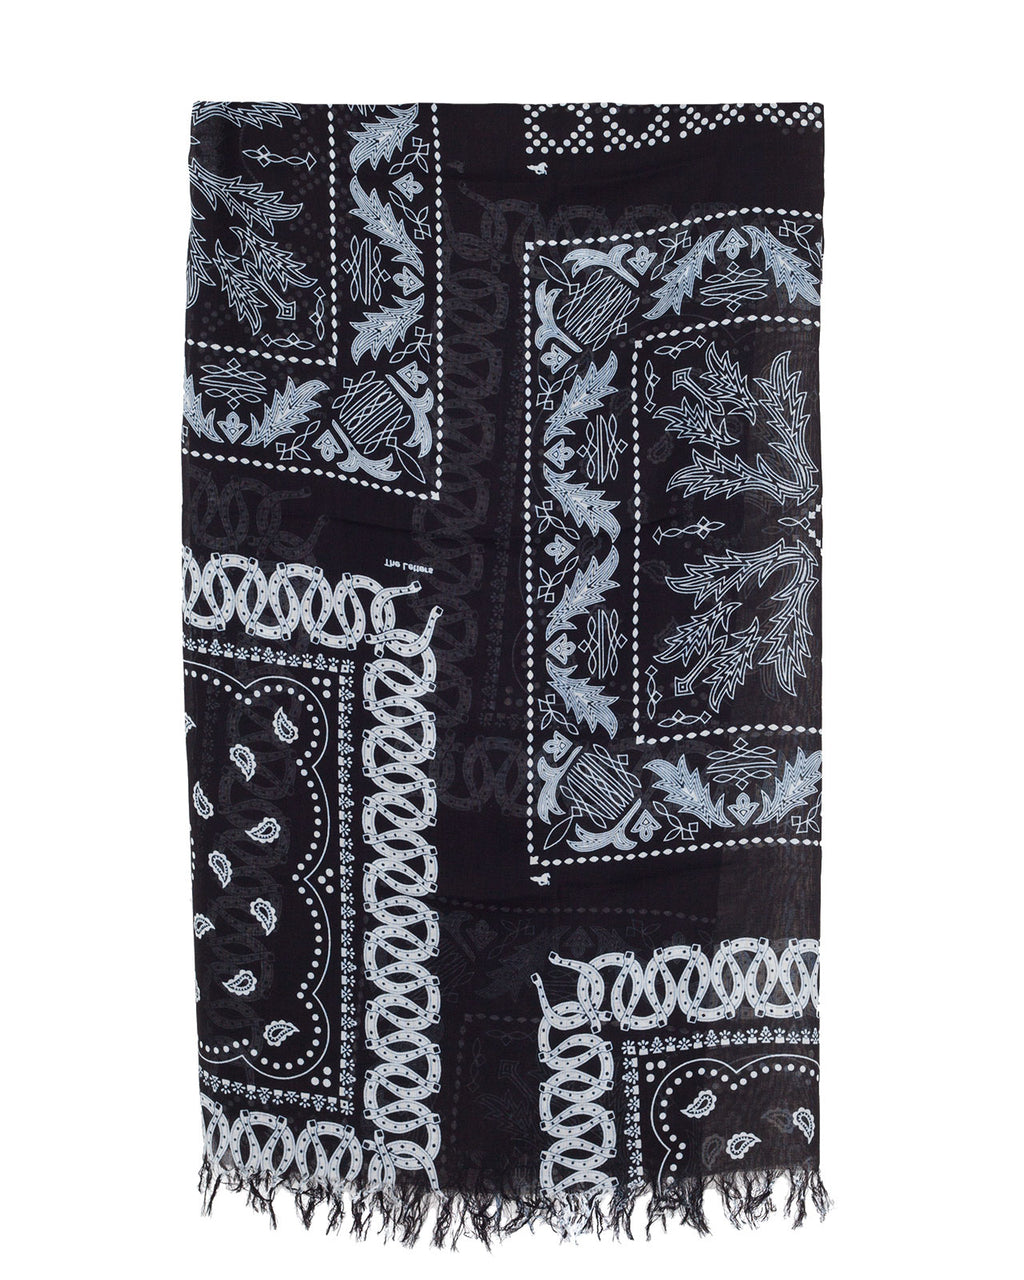 The Letters Western Bandanna Stole, Black